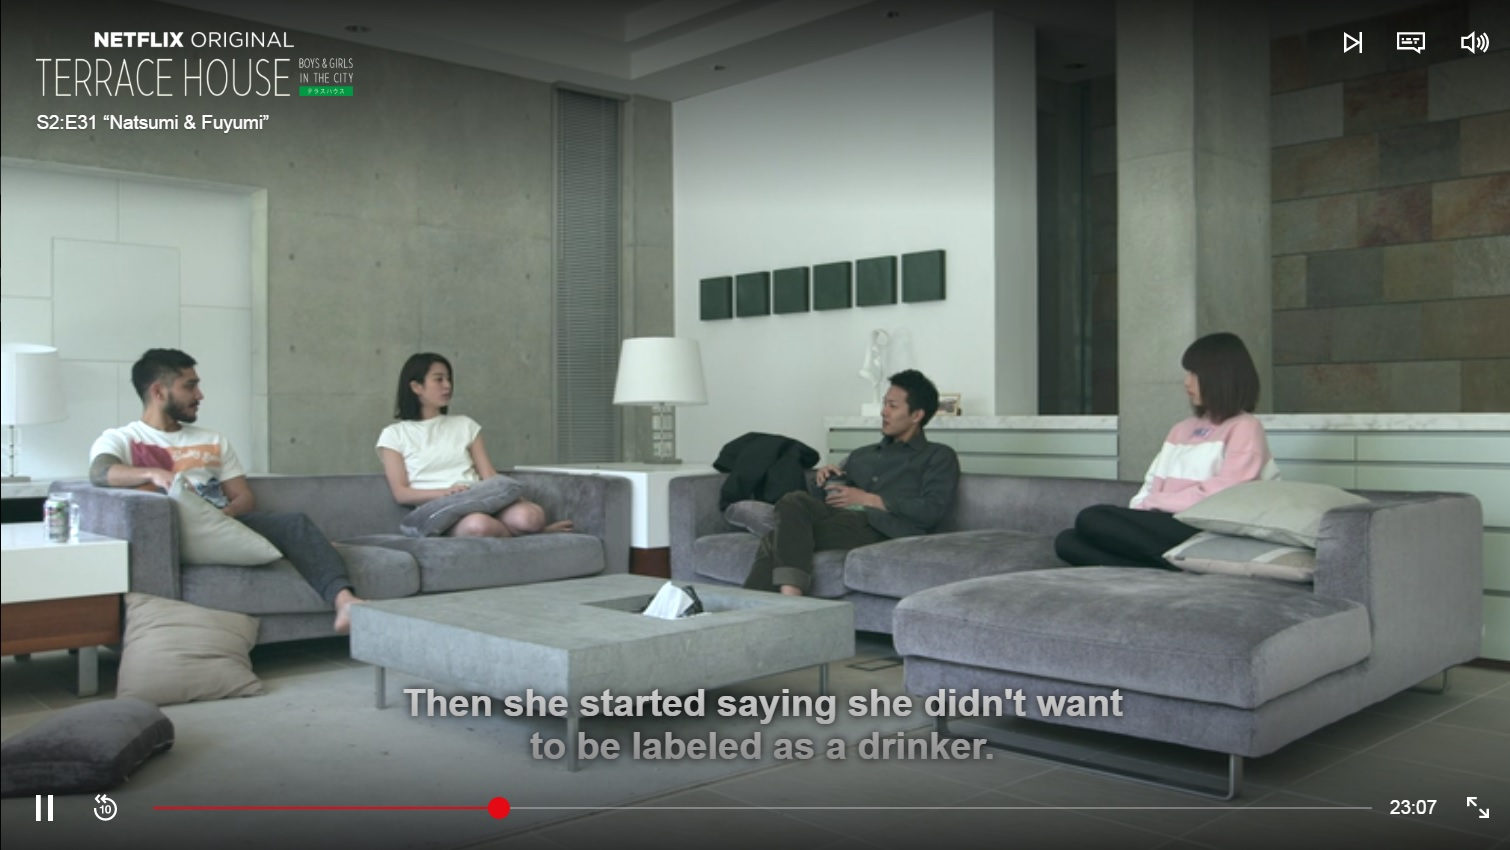 Netflix s terrace house is this the real life is this for Netflix terrace house